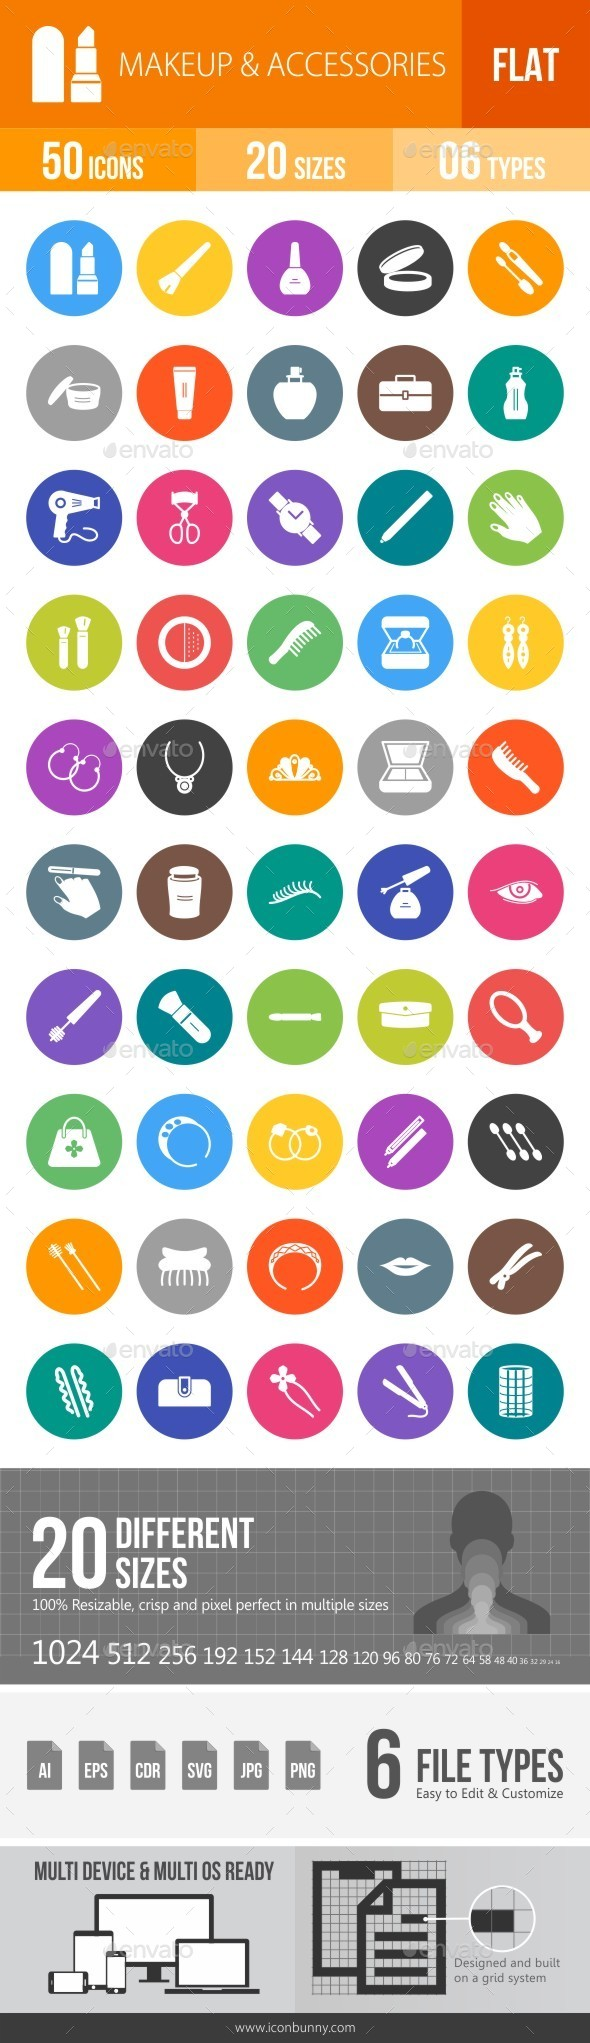 Makeup & Accessories Flat Round Icons - Icons